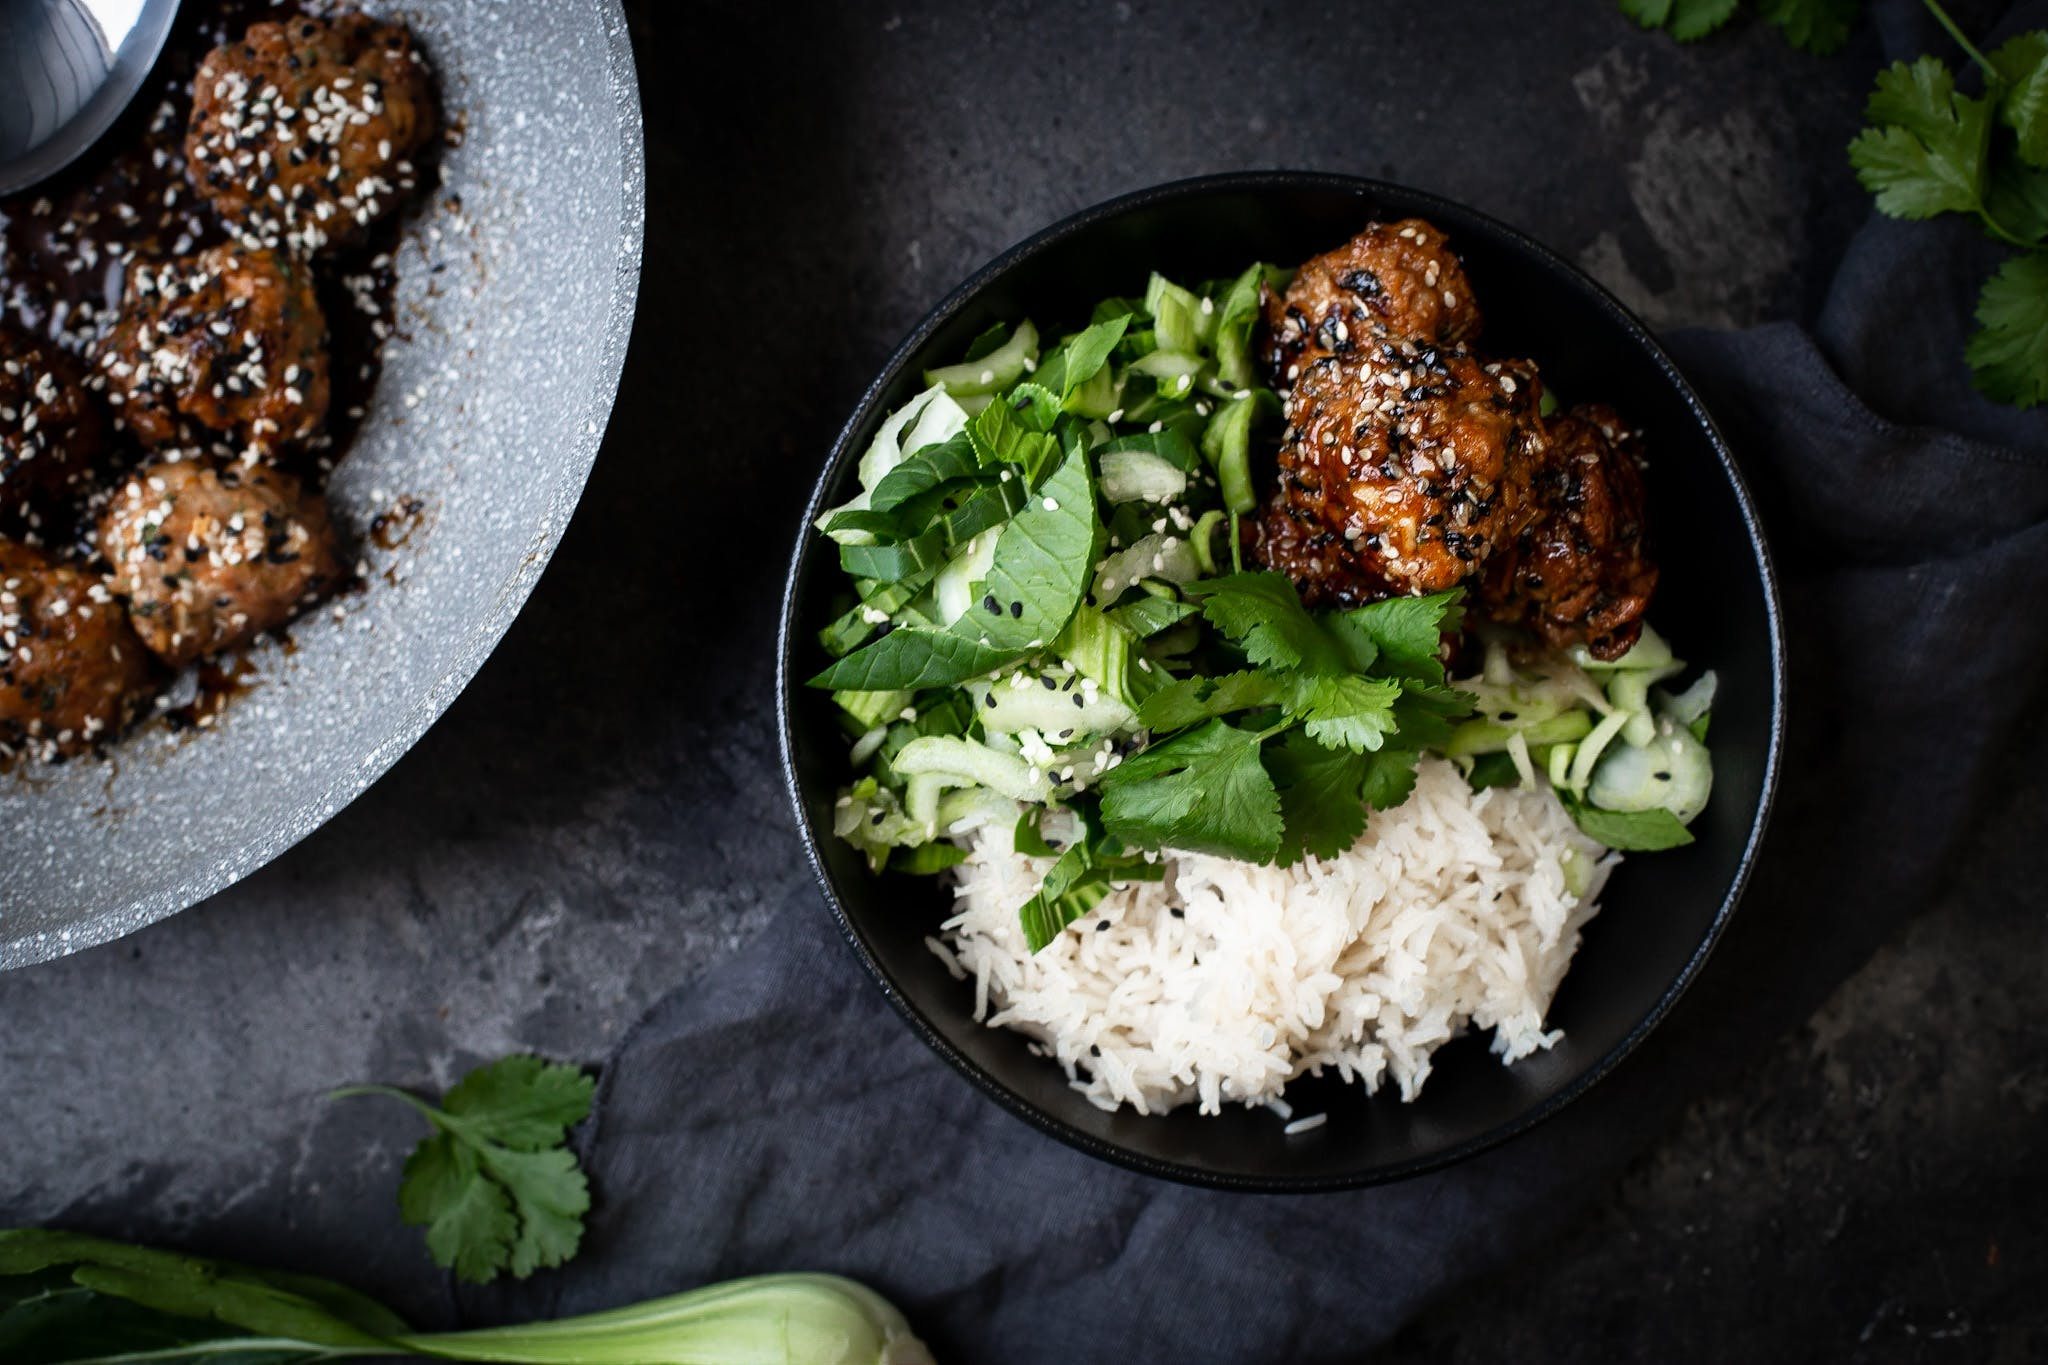 Korean Chilli and Sesame Meatballs with Steamed Rice and Bok Choy